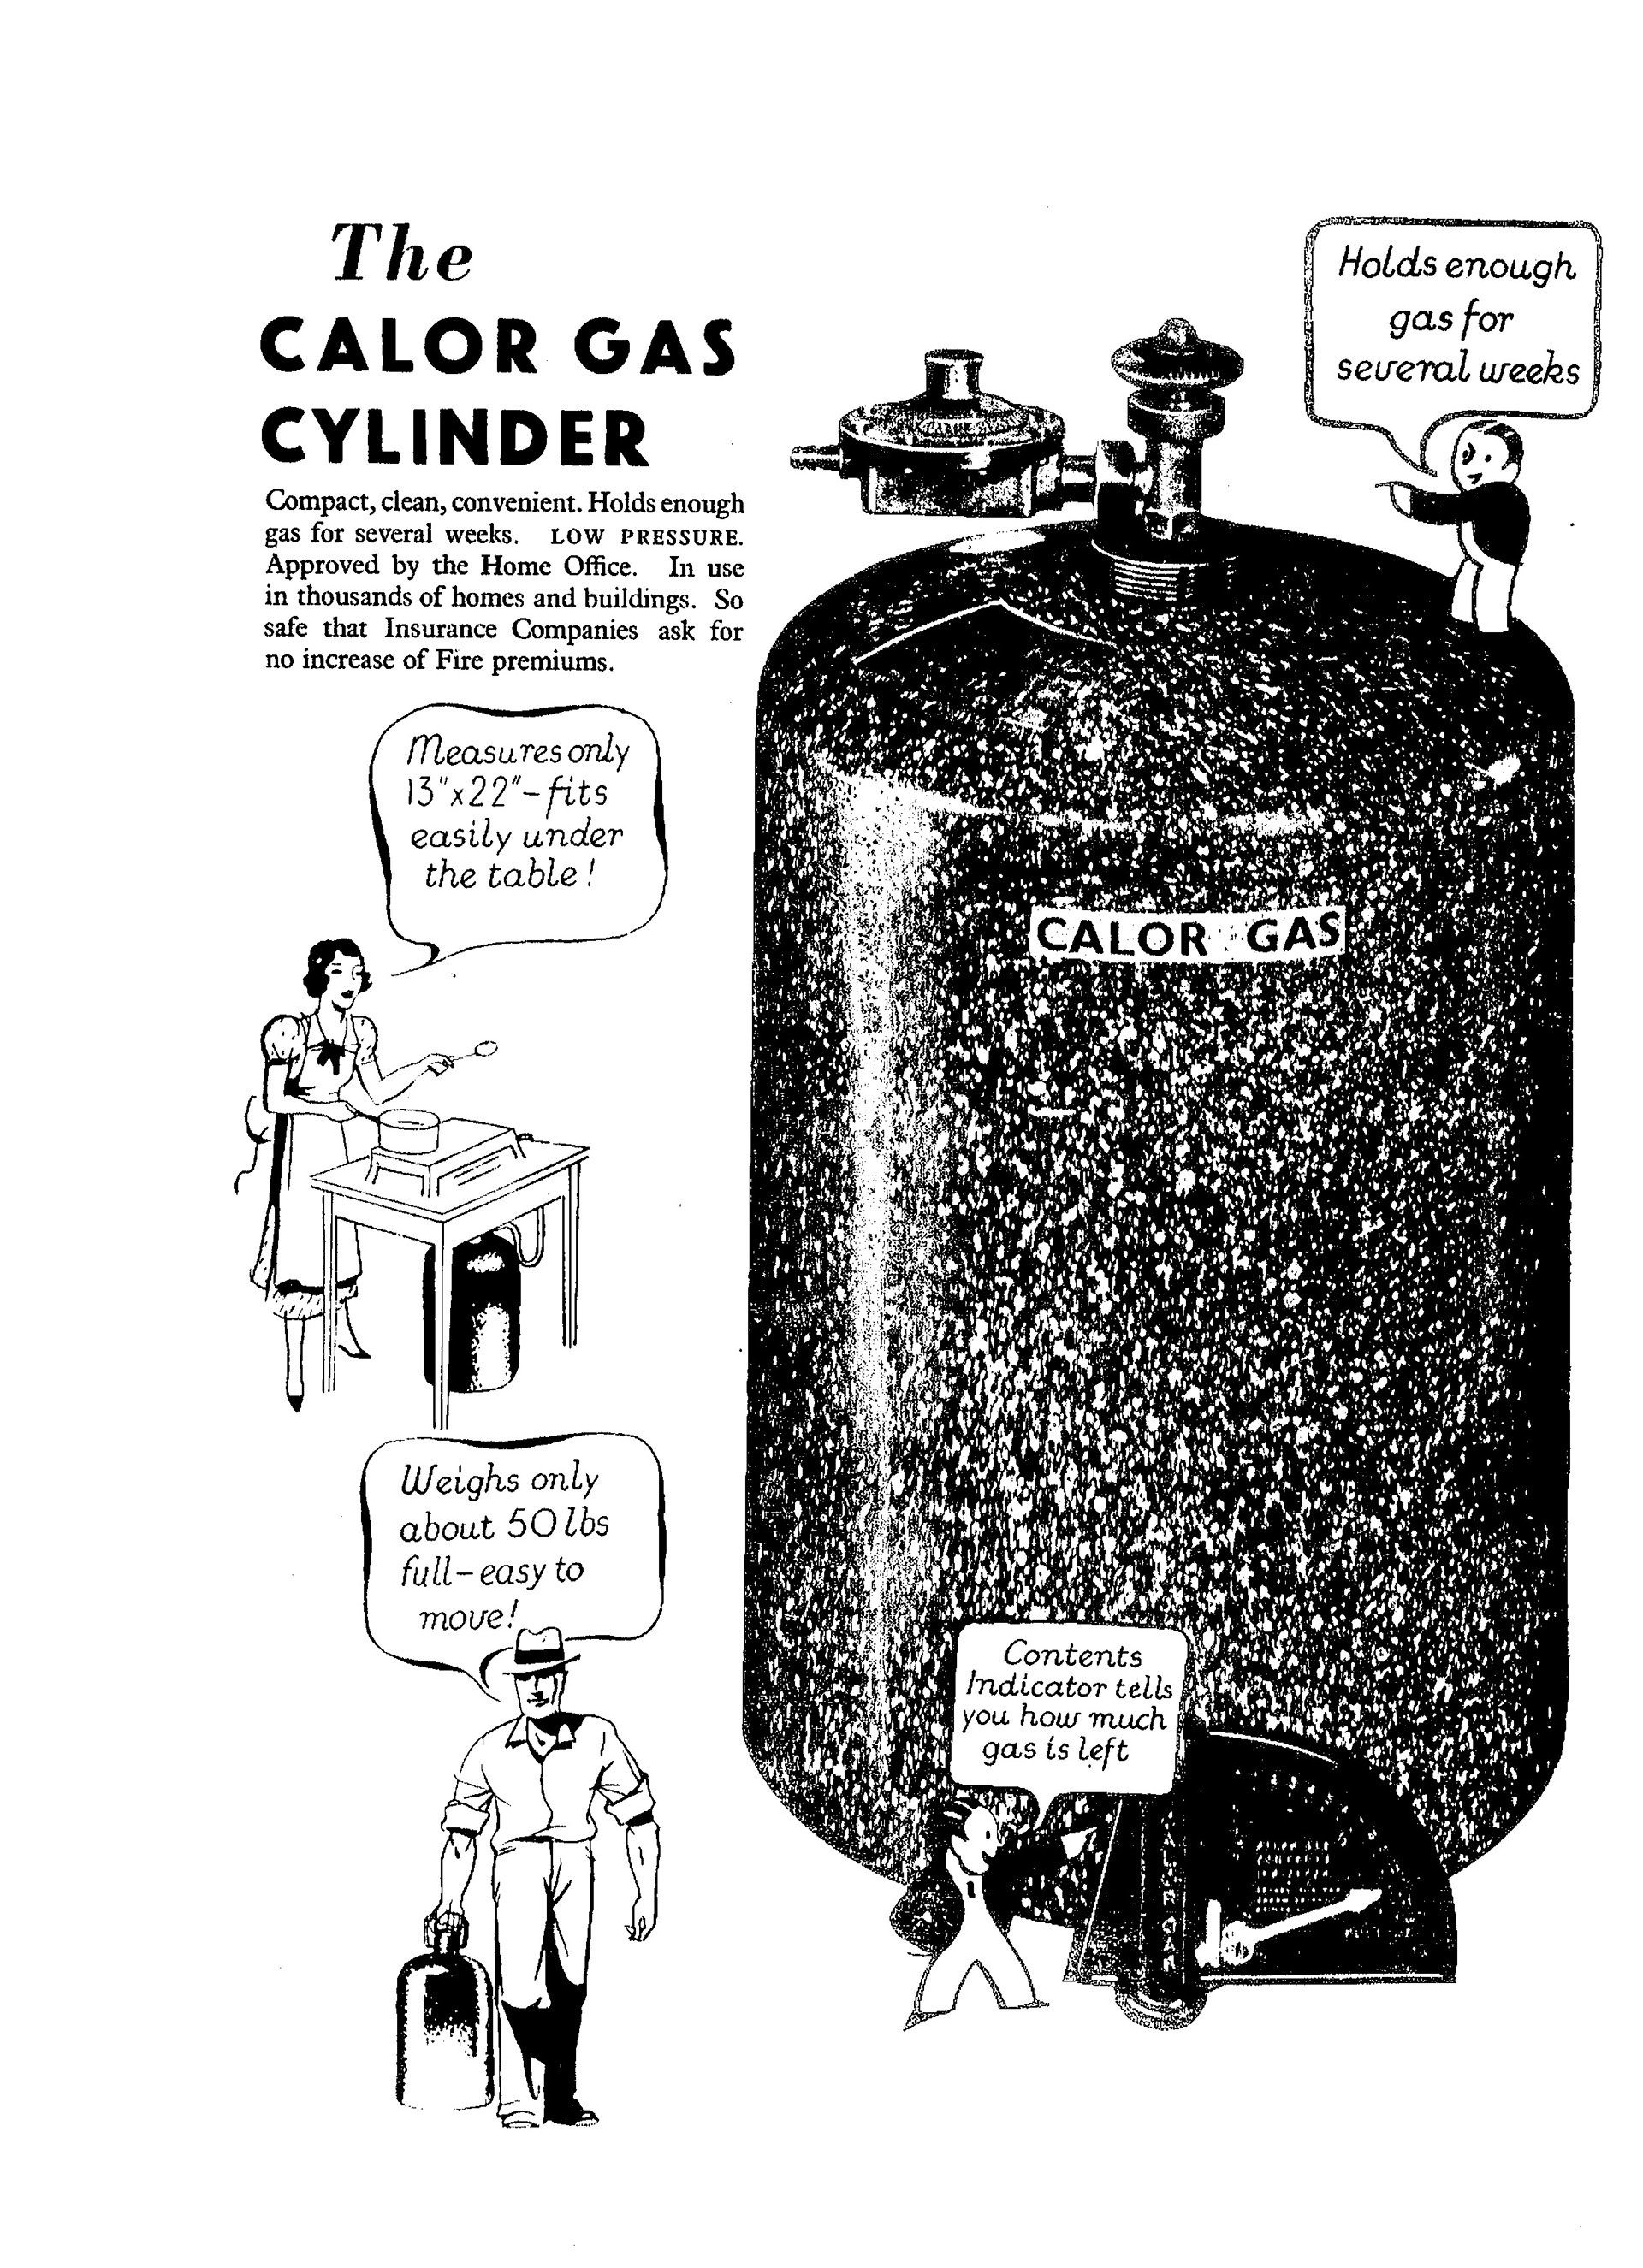 Black and white advertisement: 'The Calor Gas Cylinder'